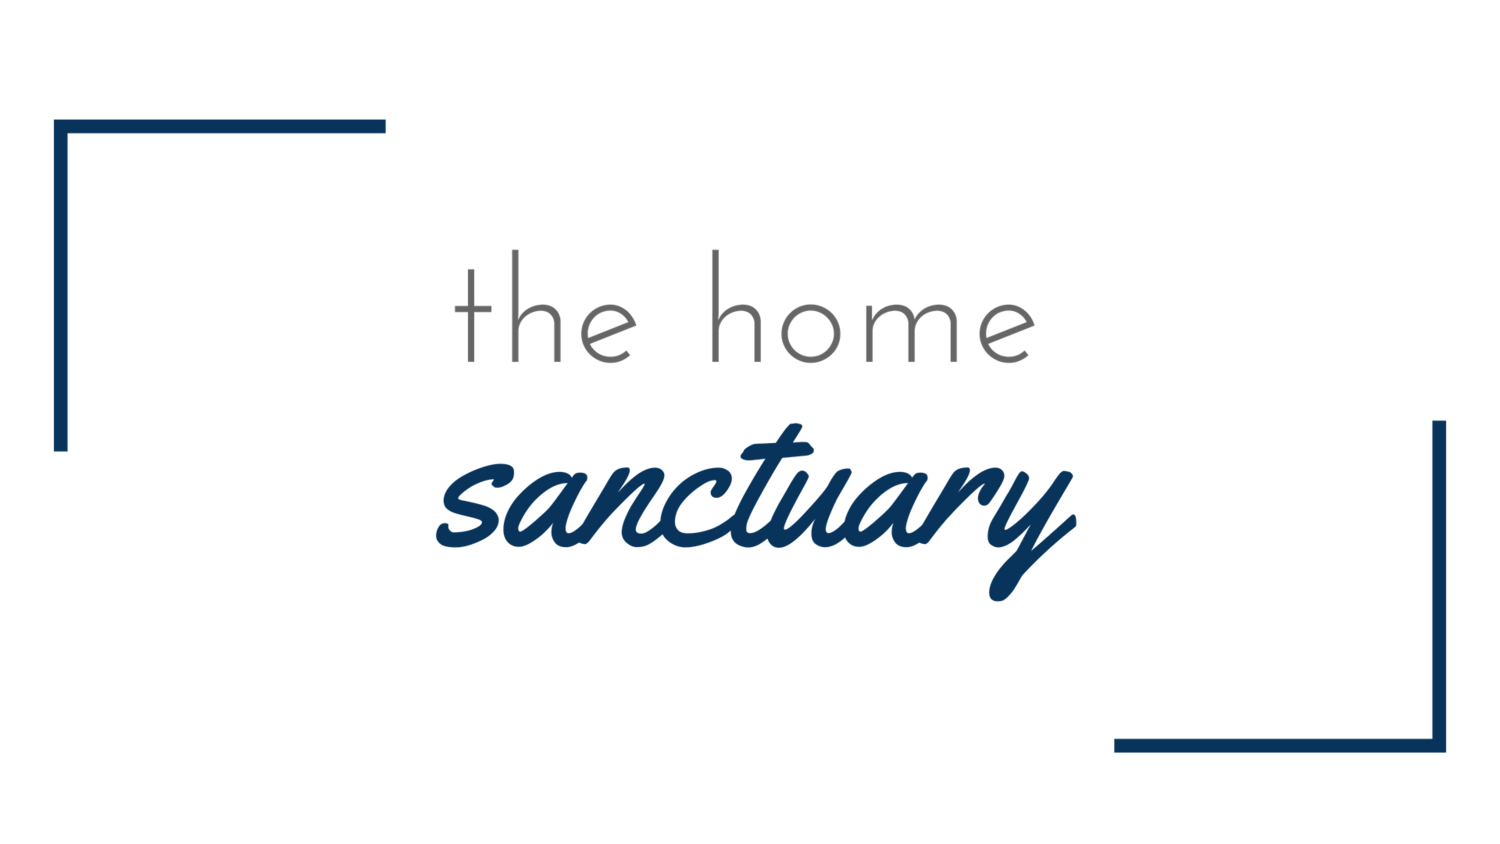 The Home Sanctuary